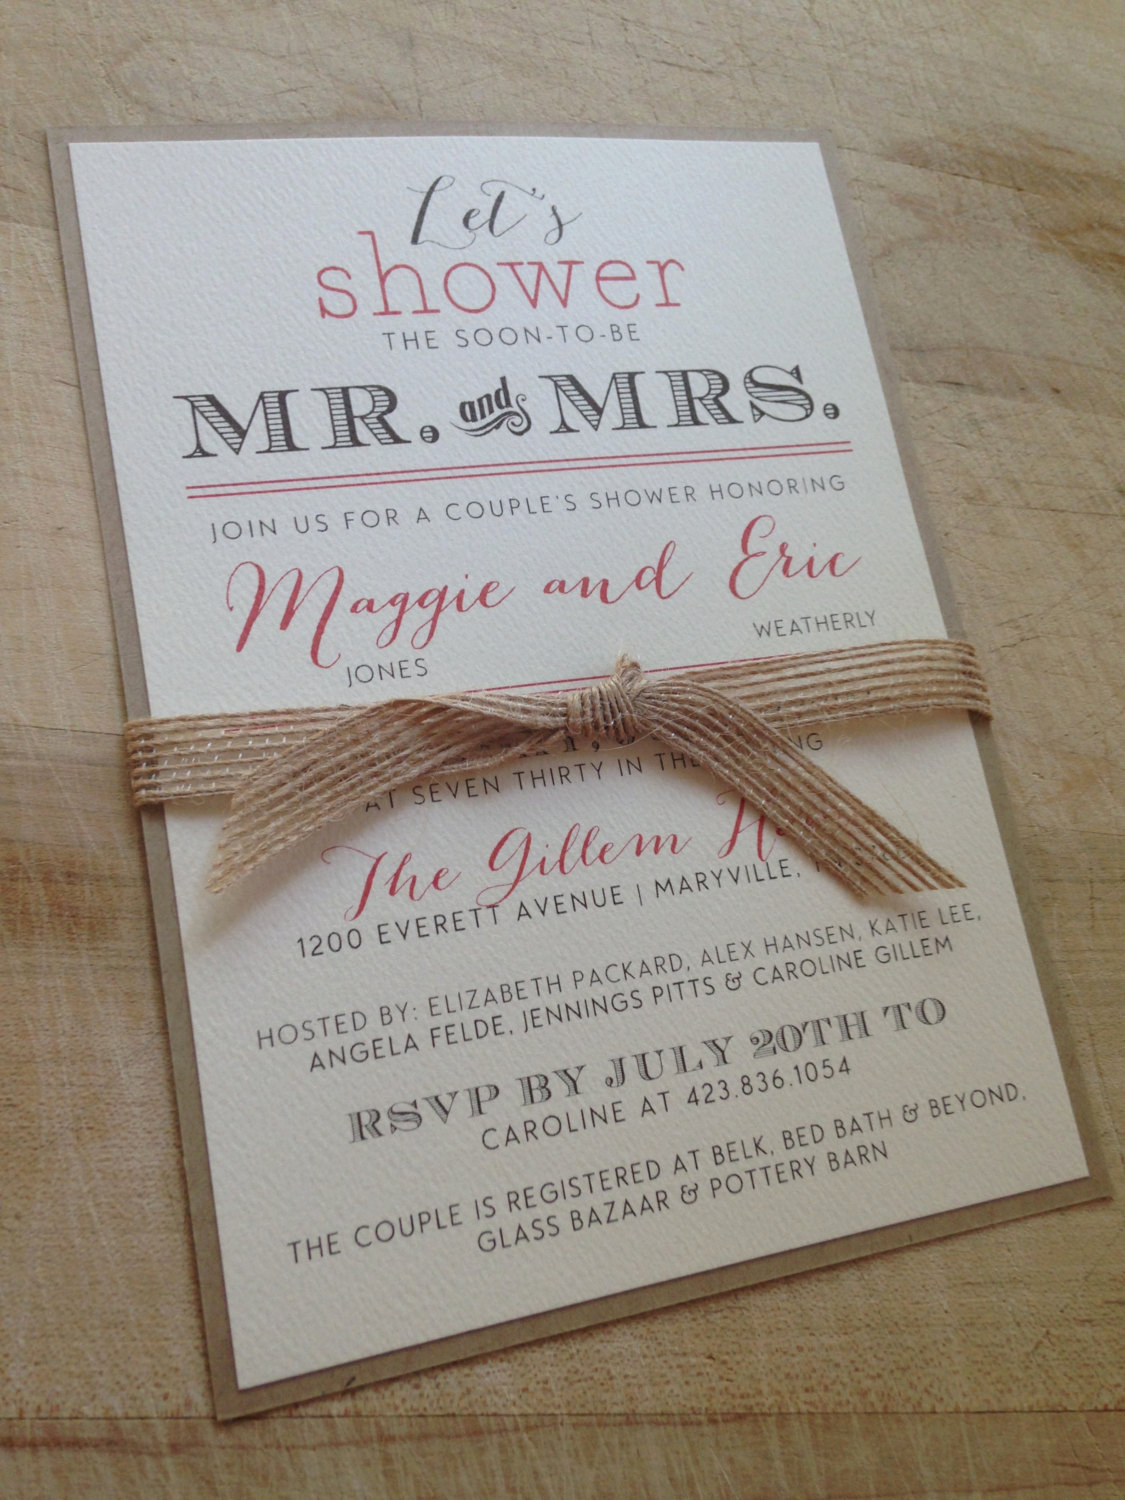 Couples Wedding Shower Invitation Wording Lovely Couple S Wedding Shower Invitation Vintage and Burlap